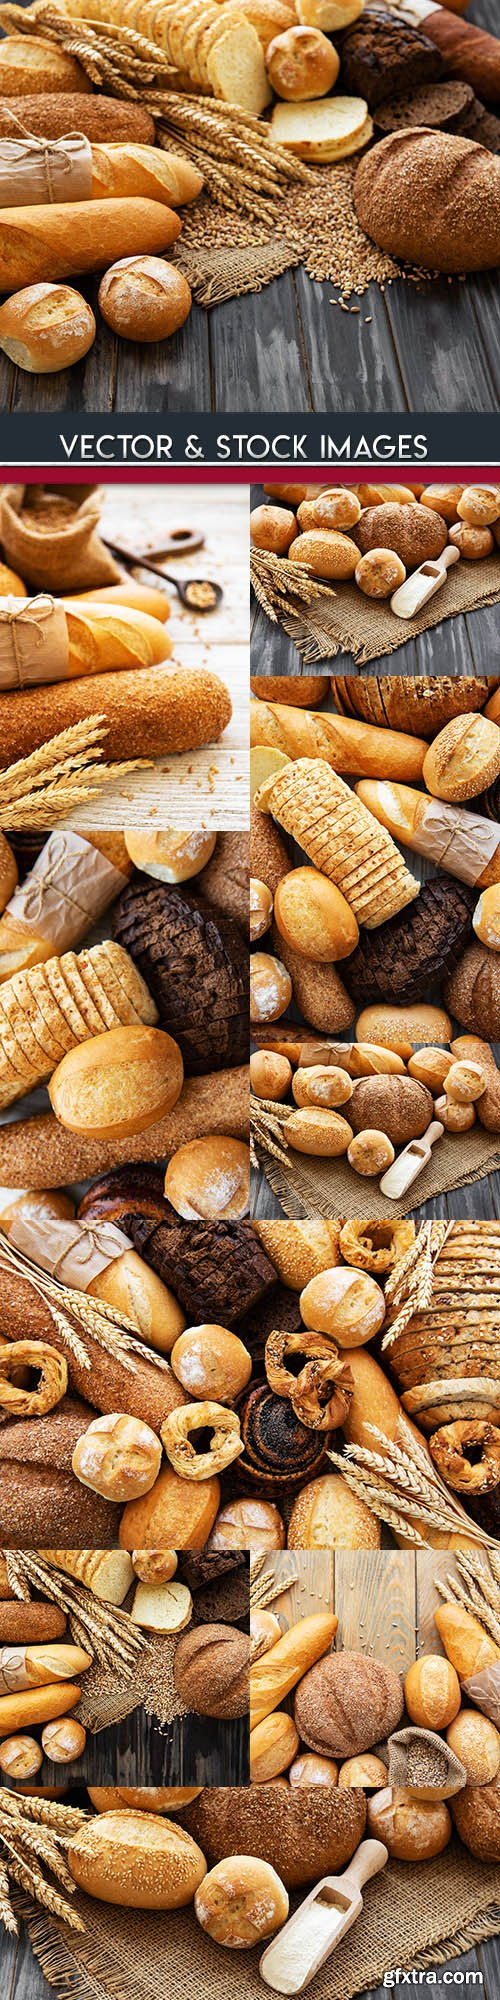 Bakery products and fresh bread from bakery